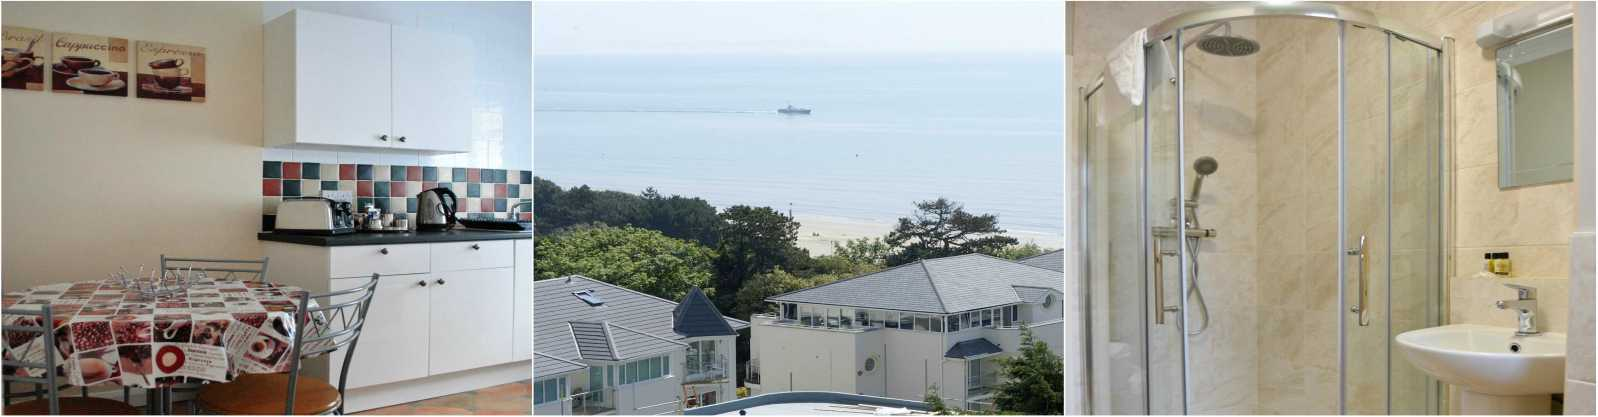 self catering holiday bournemouth, self catering apartments bournemouth poole